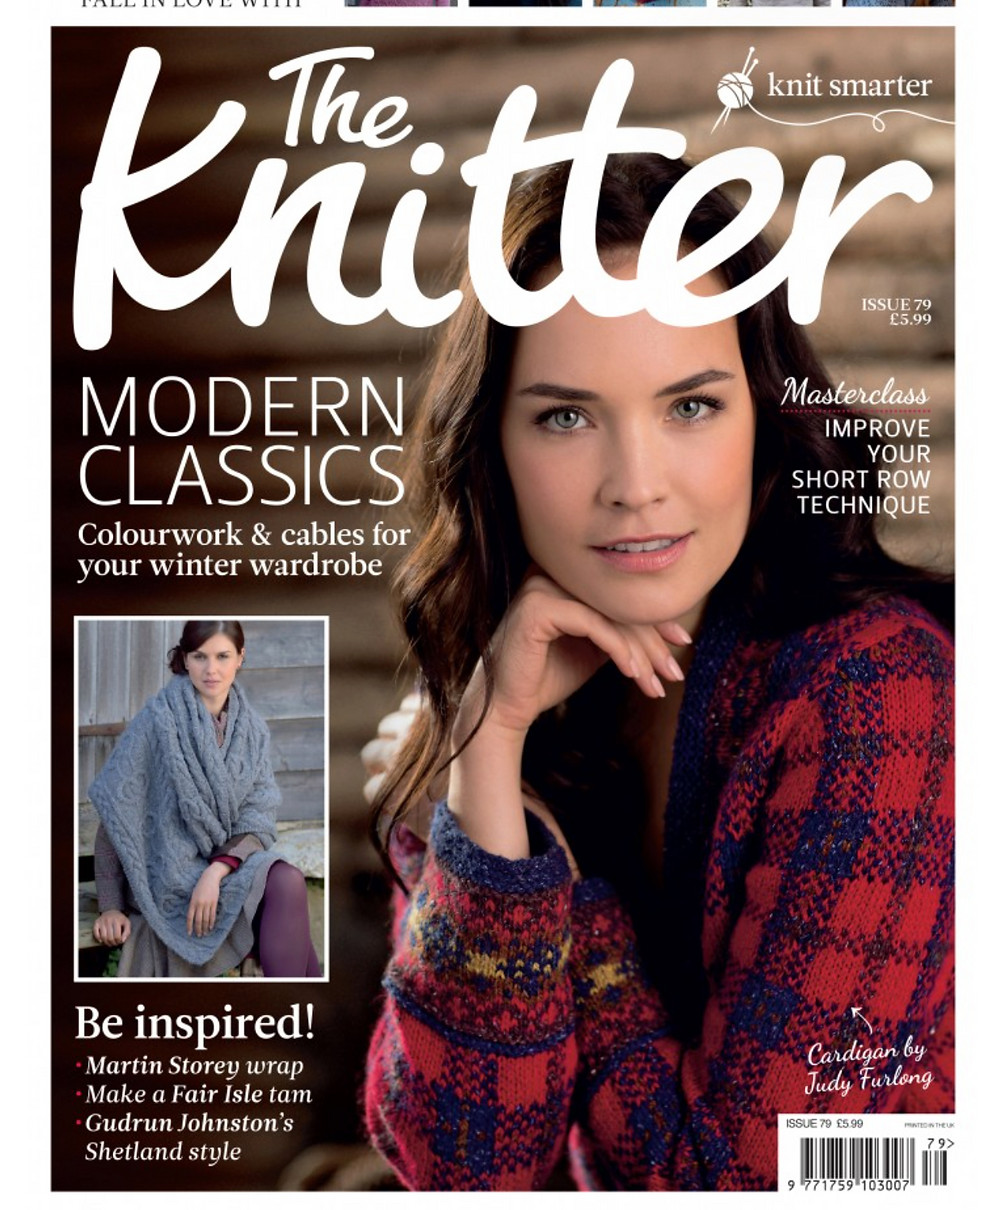 The Knitter jan 2015_edited.jpg